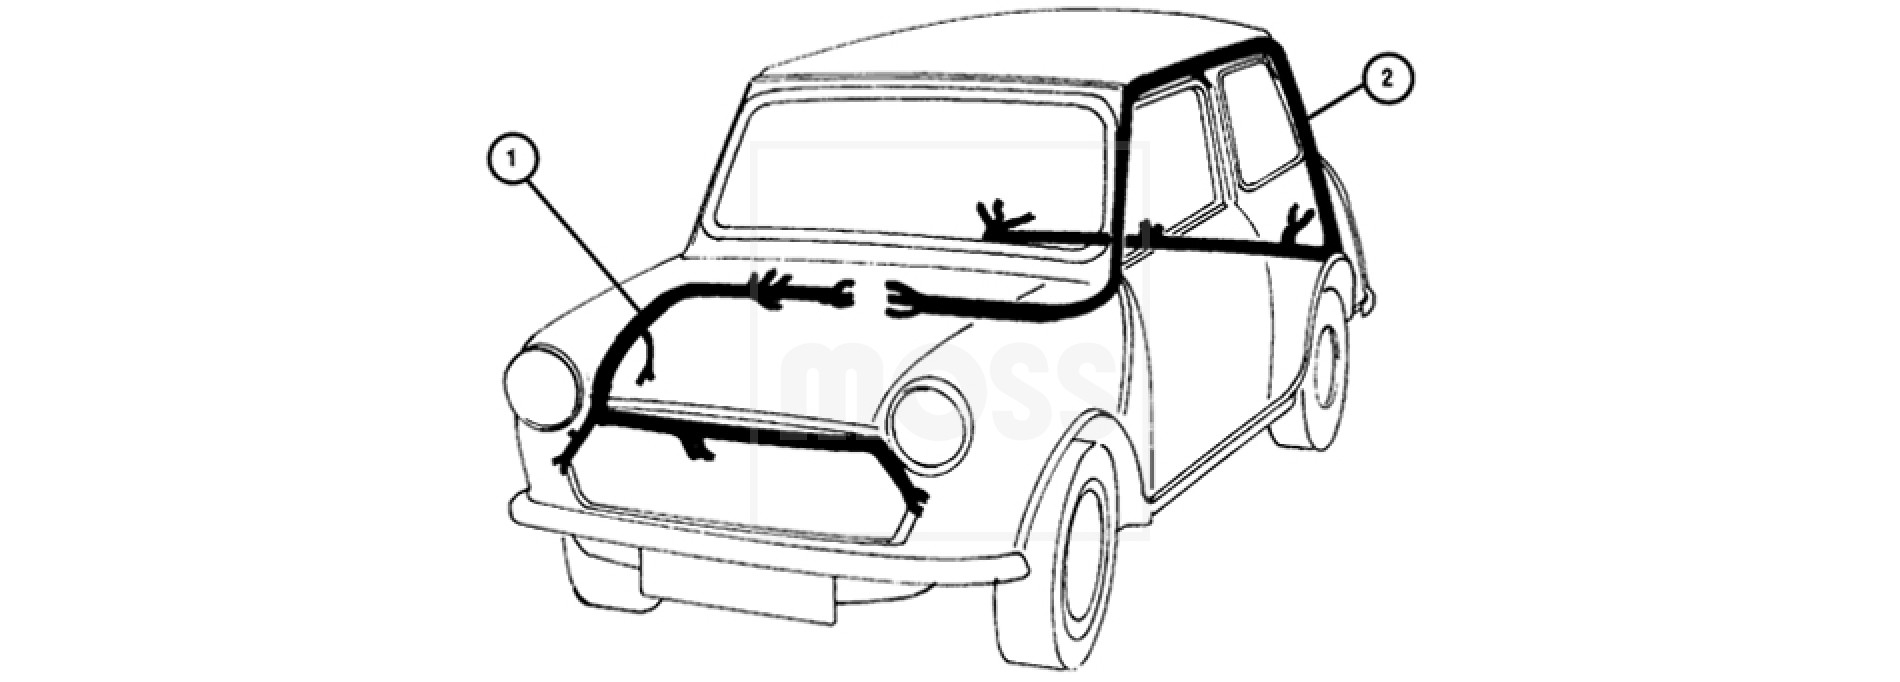 1963 Mg Midget Wiring Diagram Will Be A Thing 76 Td Fuel System 1977 Mgb